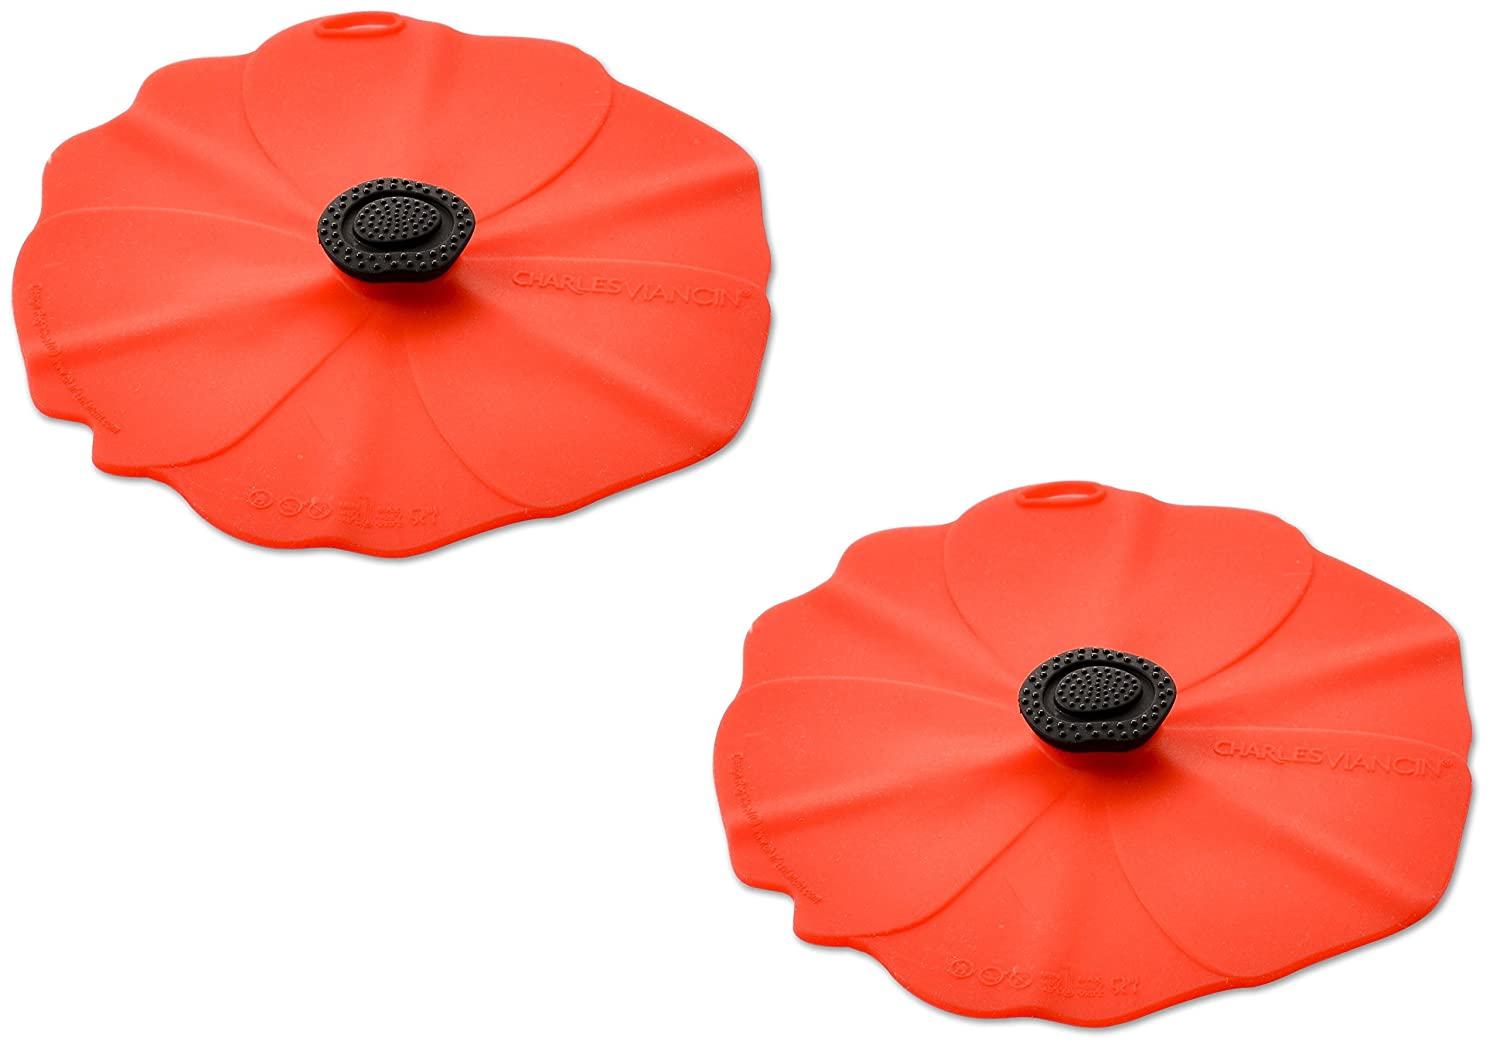 Charles Viancin Airtight Silicone Drink Covers, Set of 2, Poppy 2905